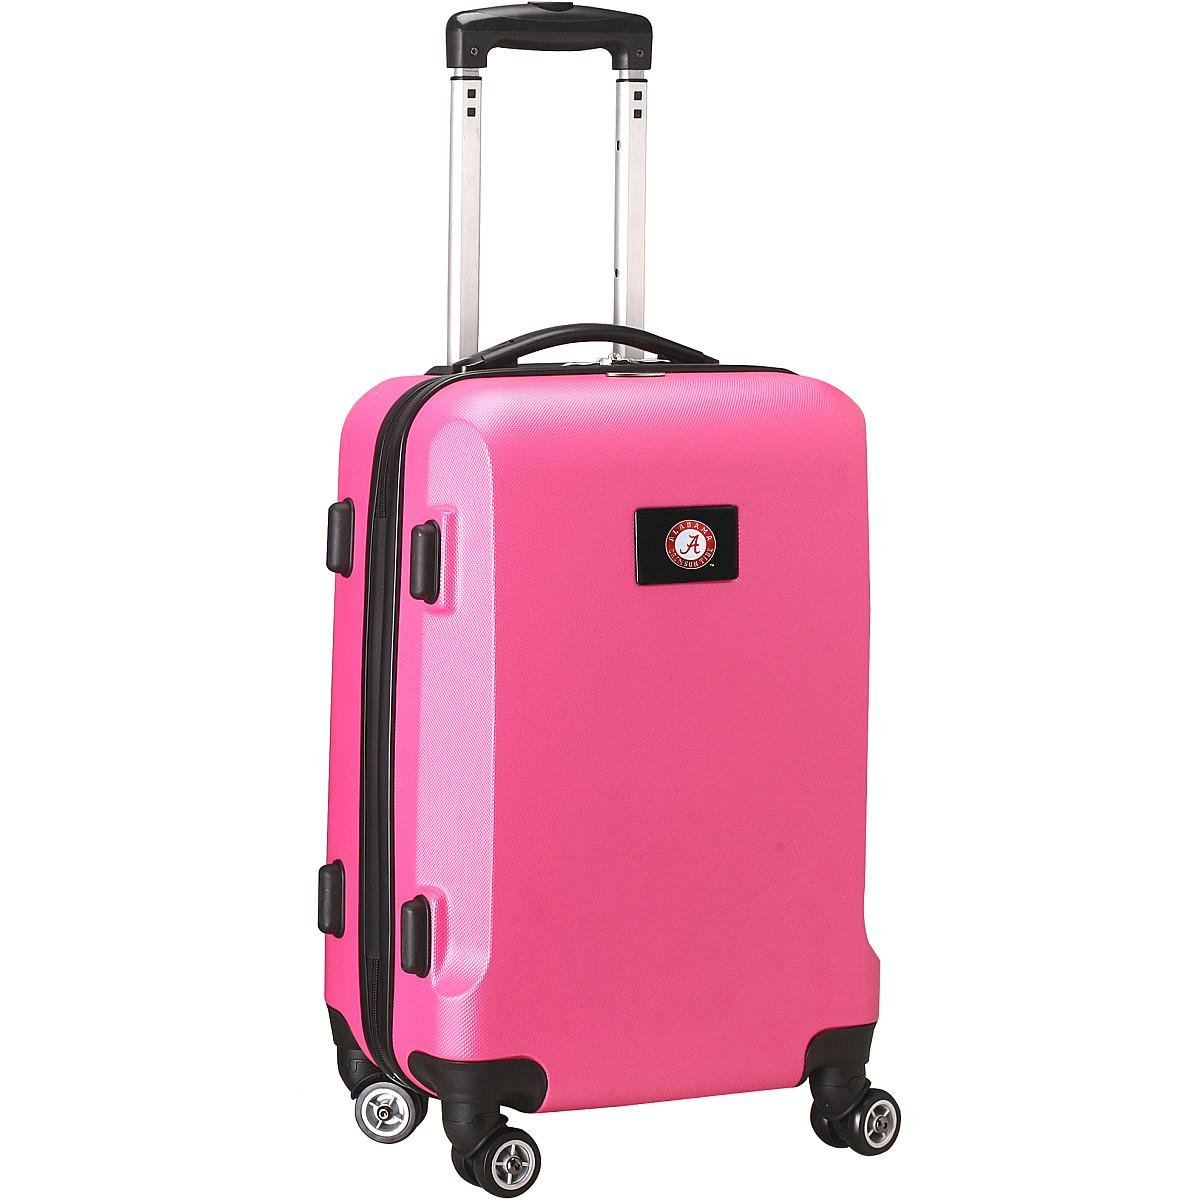 Denco NCAA Alabama Crimson Tide Carry-On Hardcase Luggage Spinner, Pink